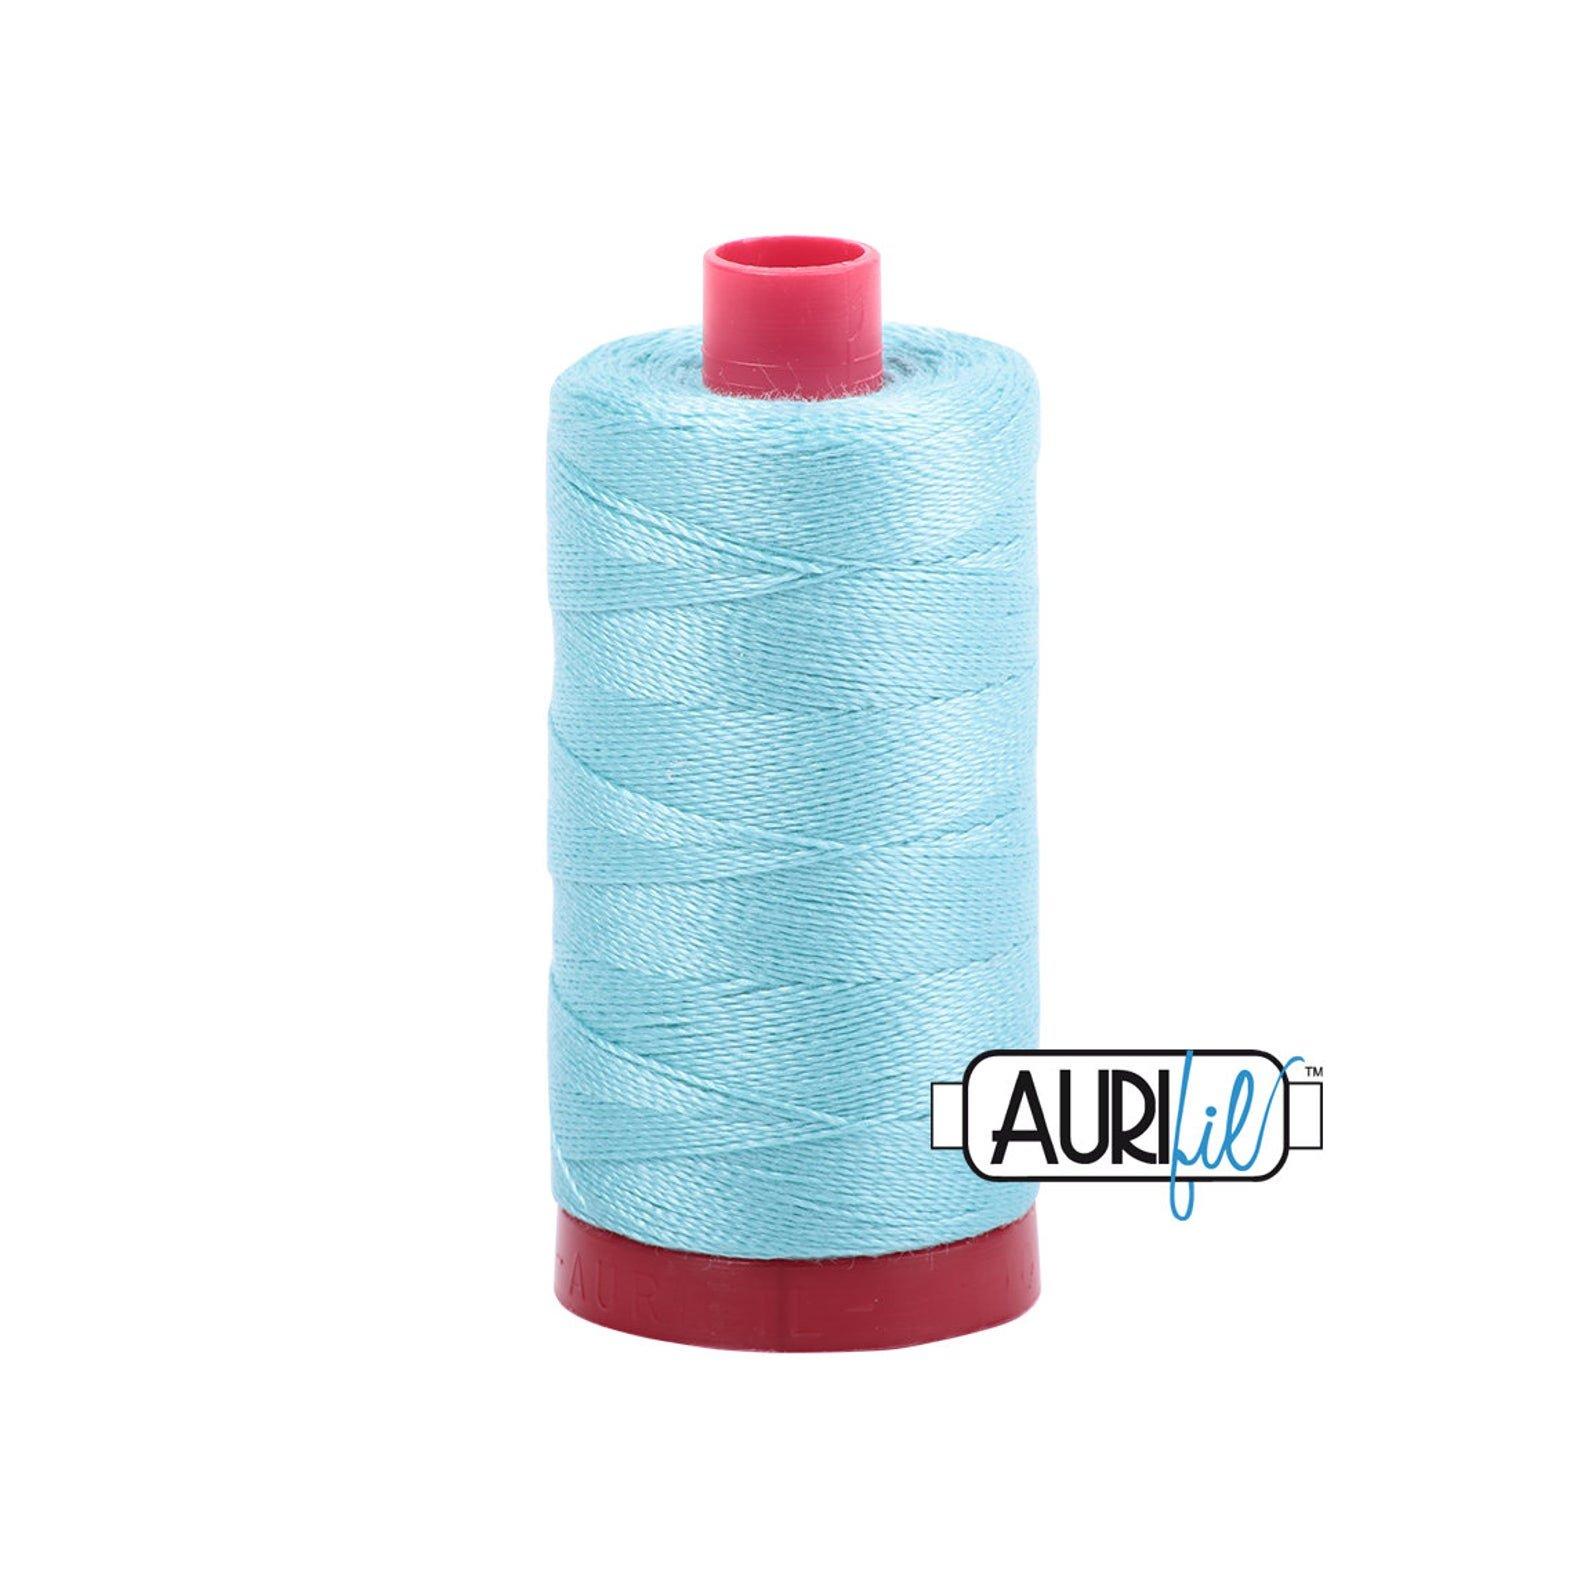 Mako Cotton Embroidery Thread 12wt 356yds Light Turquoise